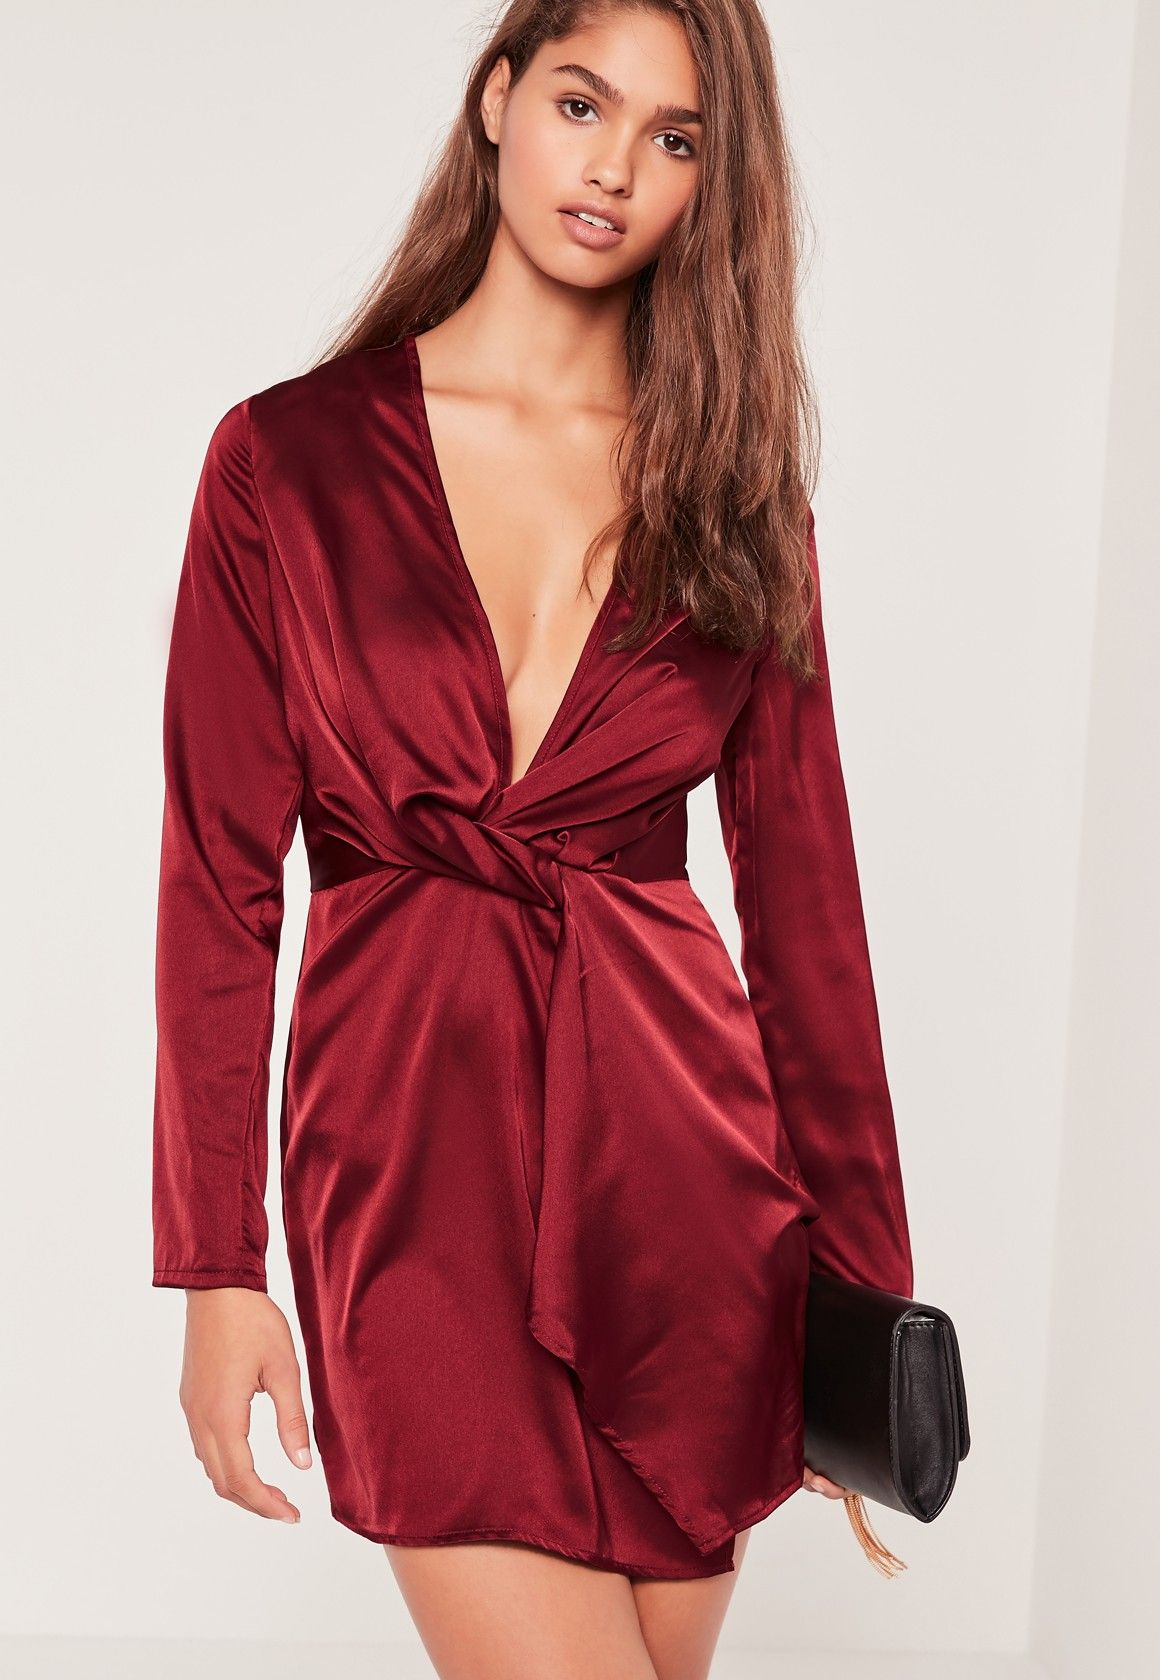 Missguided - Silky Plunge Wrap Shift Dress Burgundy  95d0bd30d7aa